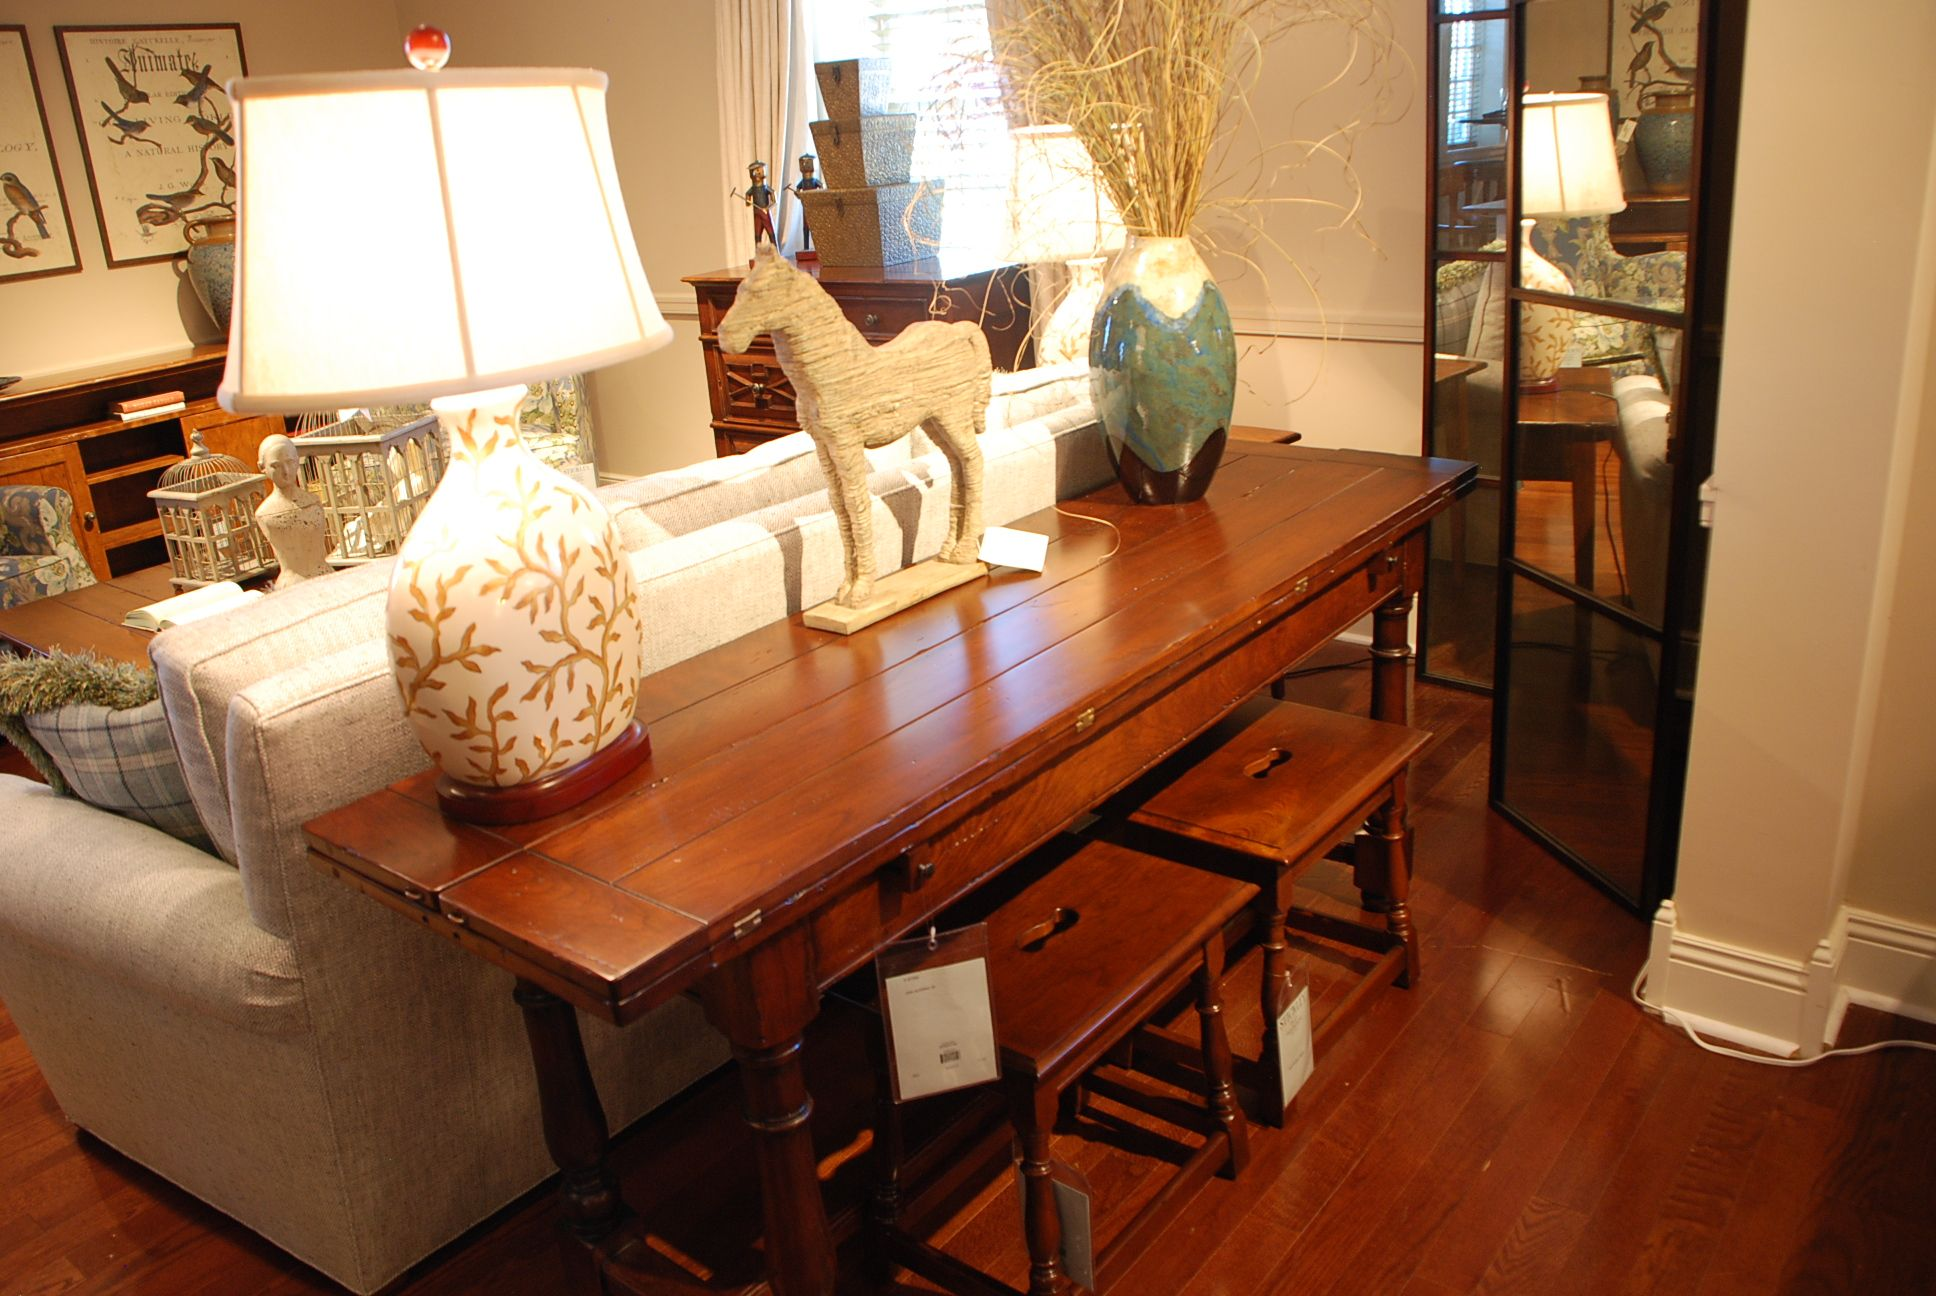 Such a gorgeous look!  Practical and functional too!  #HPMKT #InteriorDesign #QualityMatters